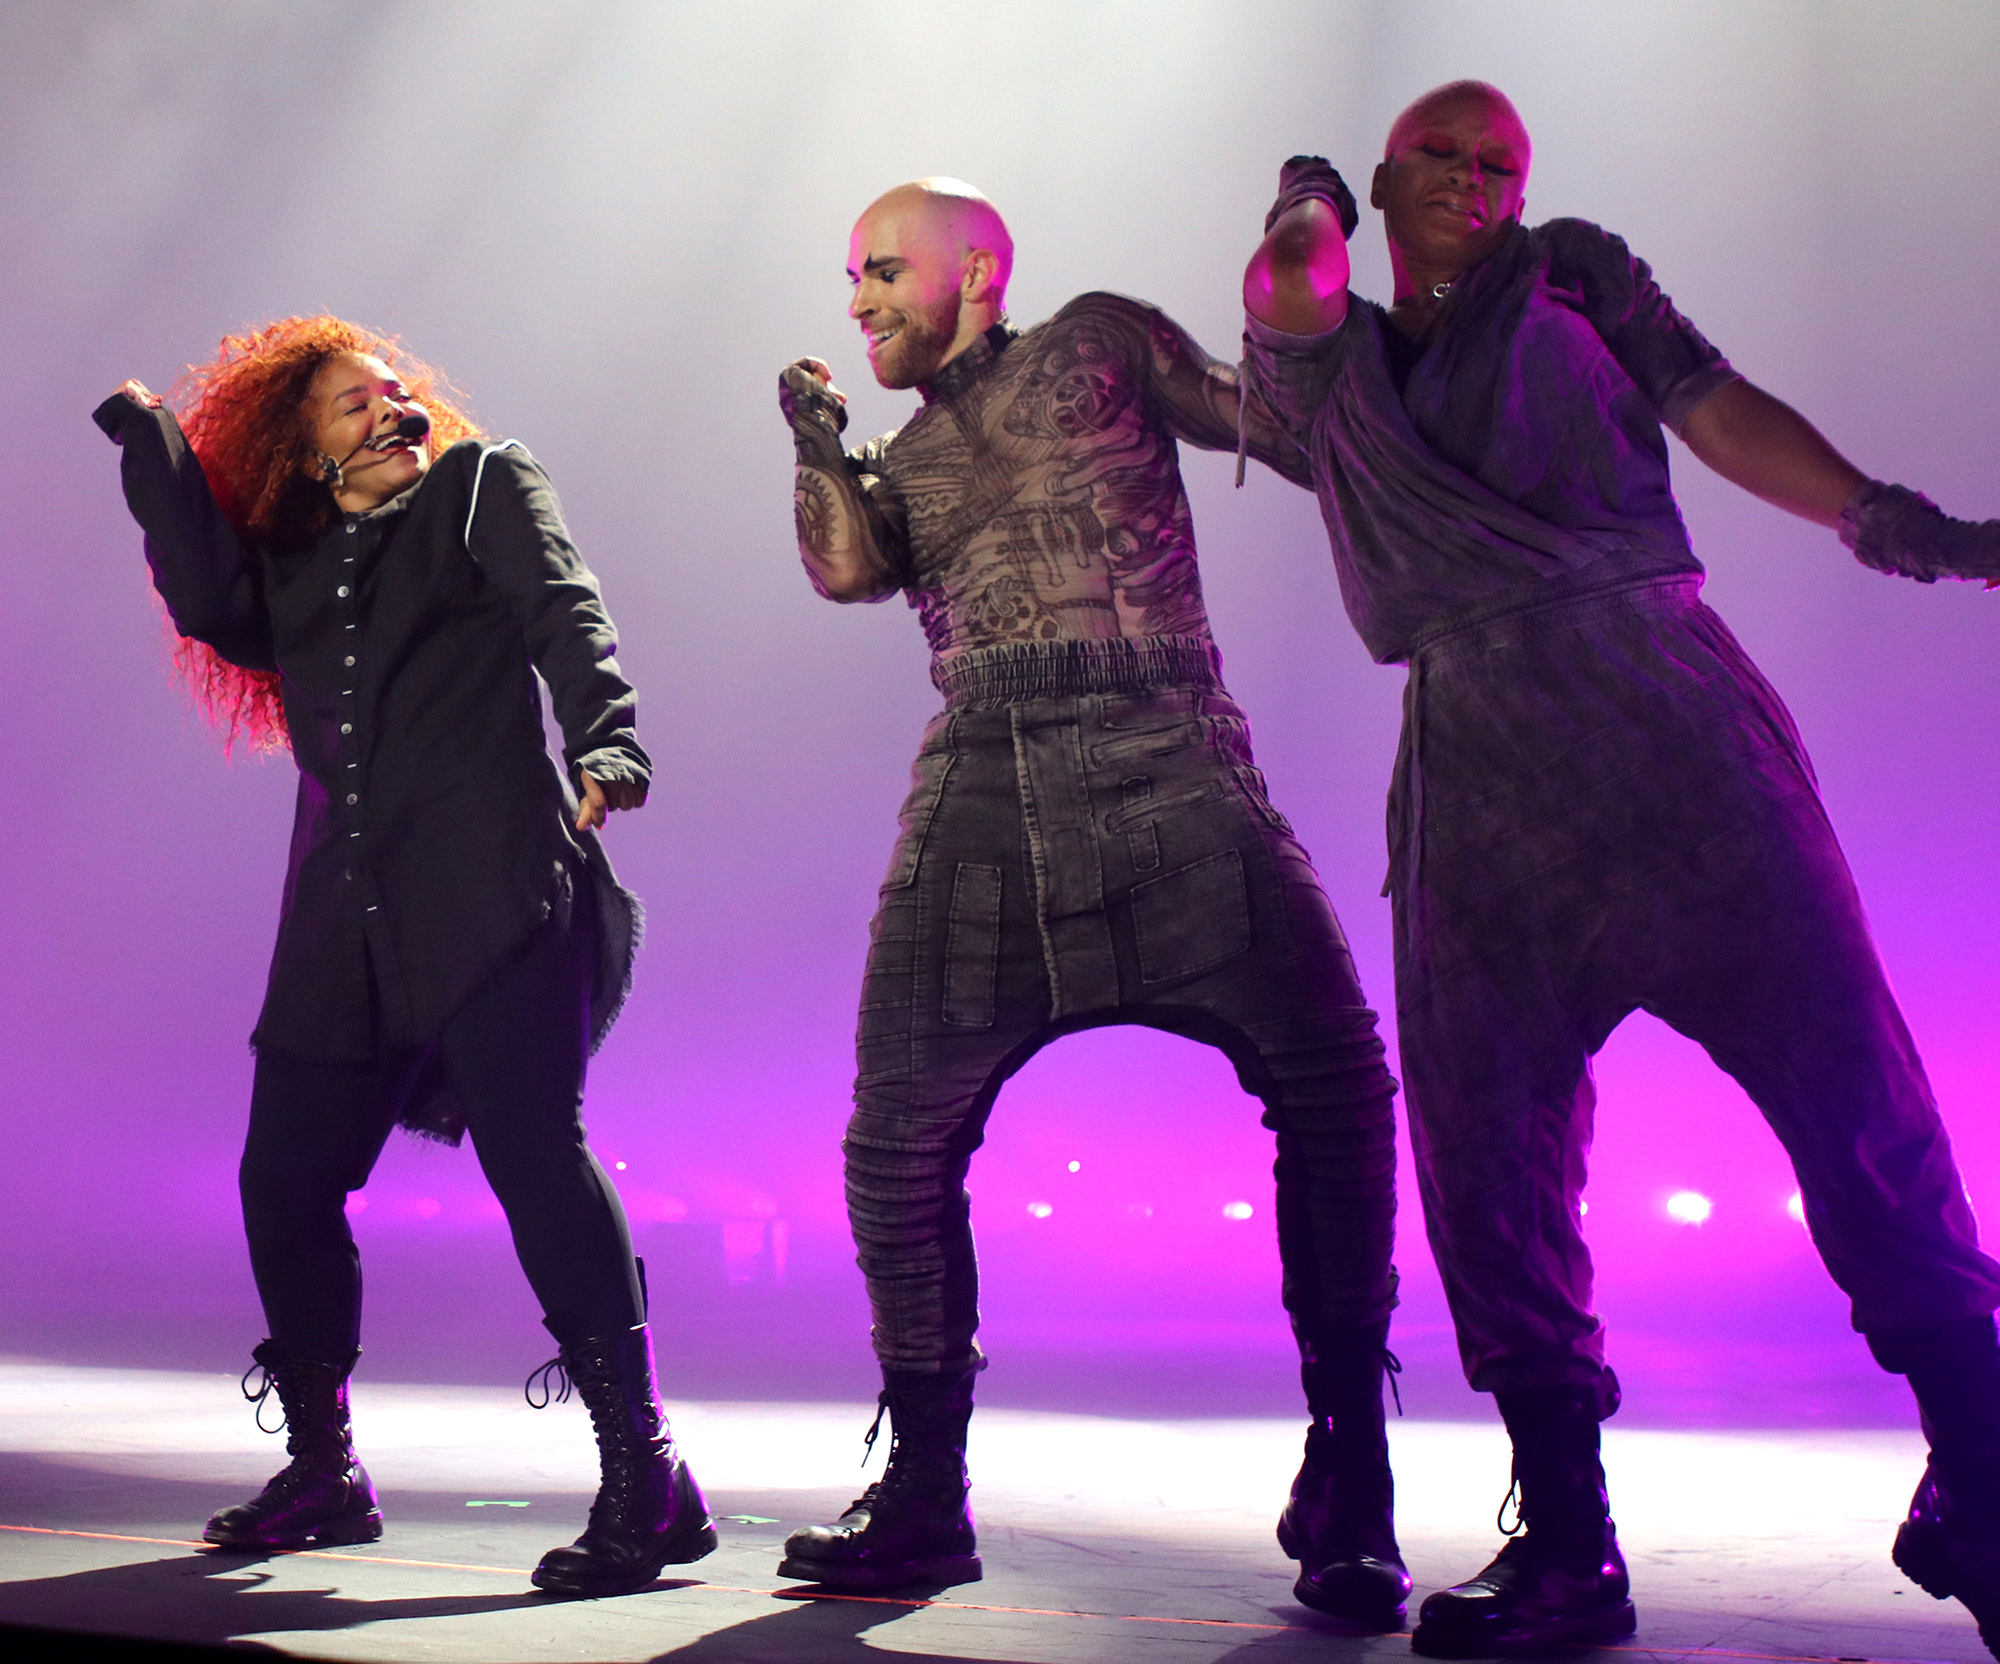 LAS VEGAS, NEVADA - MAY 17: Janet Jackson (L) performs onstage during the opening night of her Metamorphosis - The Las Vegas Residency at Park Theater at Park MGM on May 17, 2019 in Las Vegas, Nevada. (Photo by Farrenton Grigsby/Getty Images for JJ)